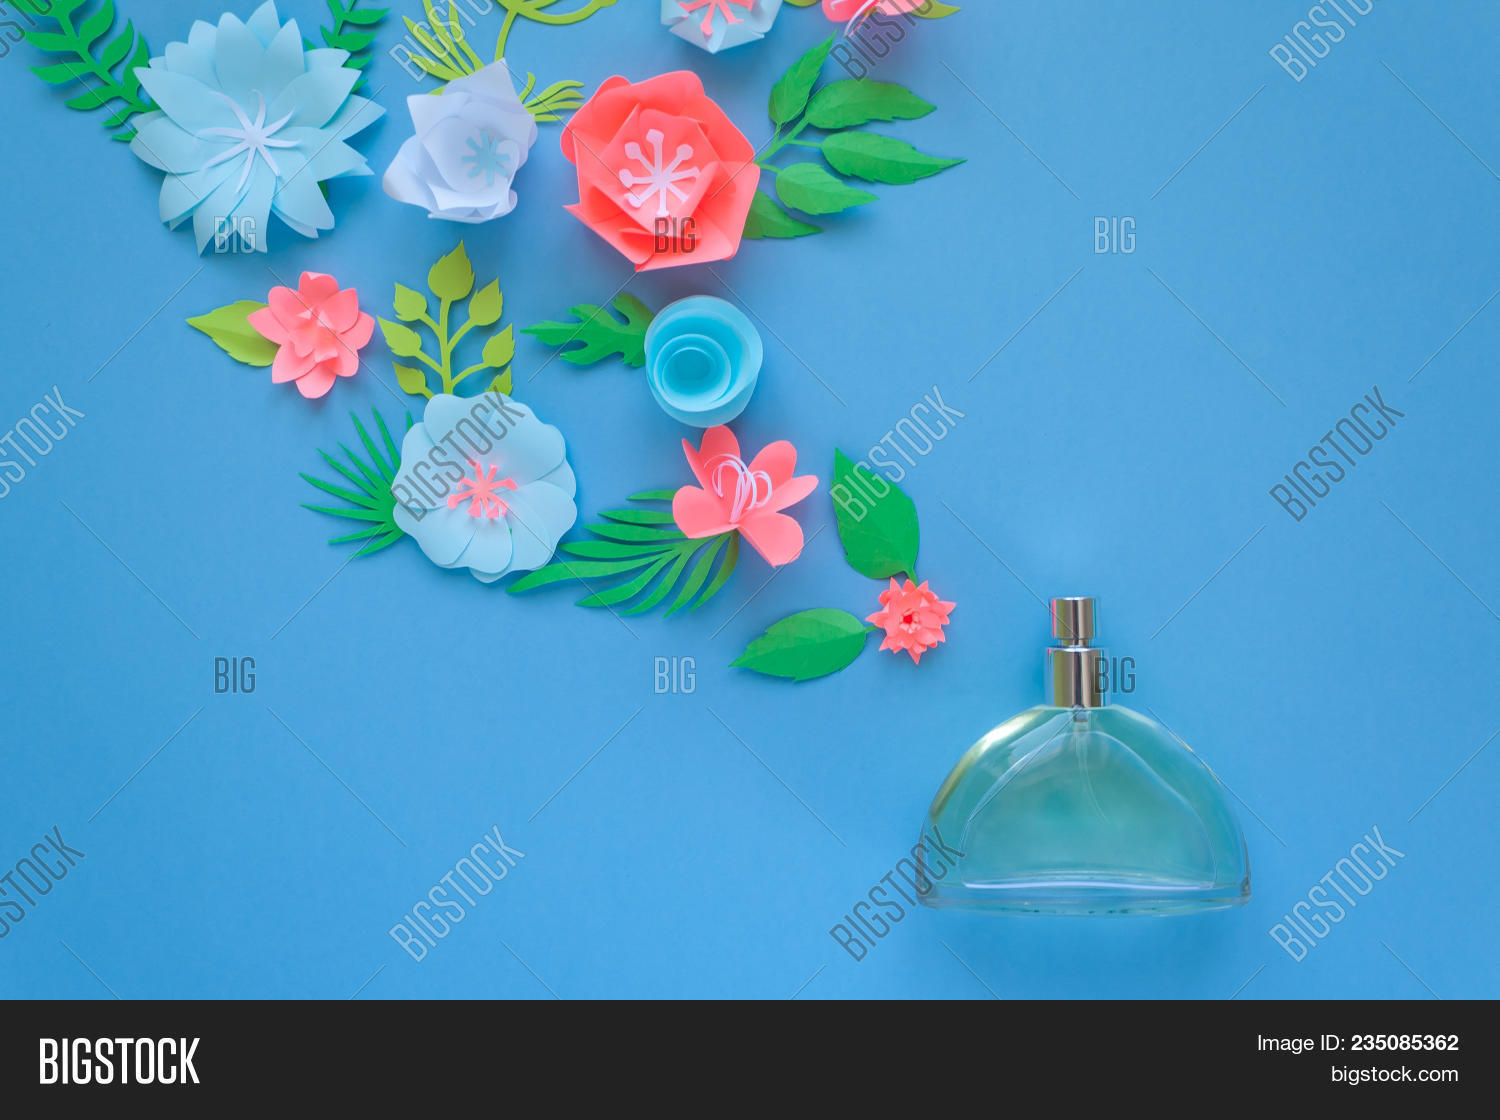 Flower arrangement image photo free trial bigstock flowers fragrance perfume on blue background cut from paper izmirmasajfo